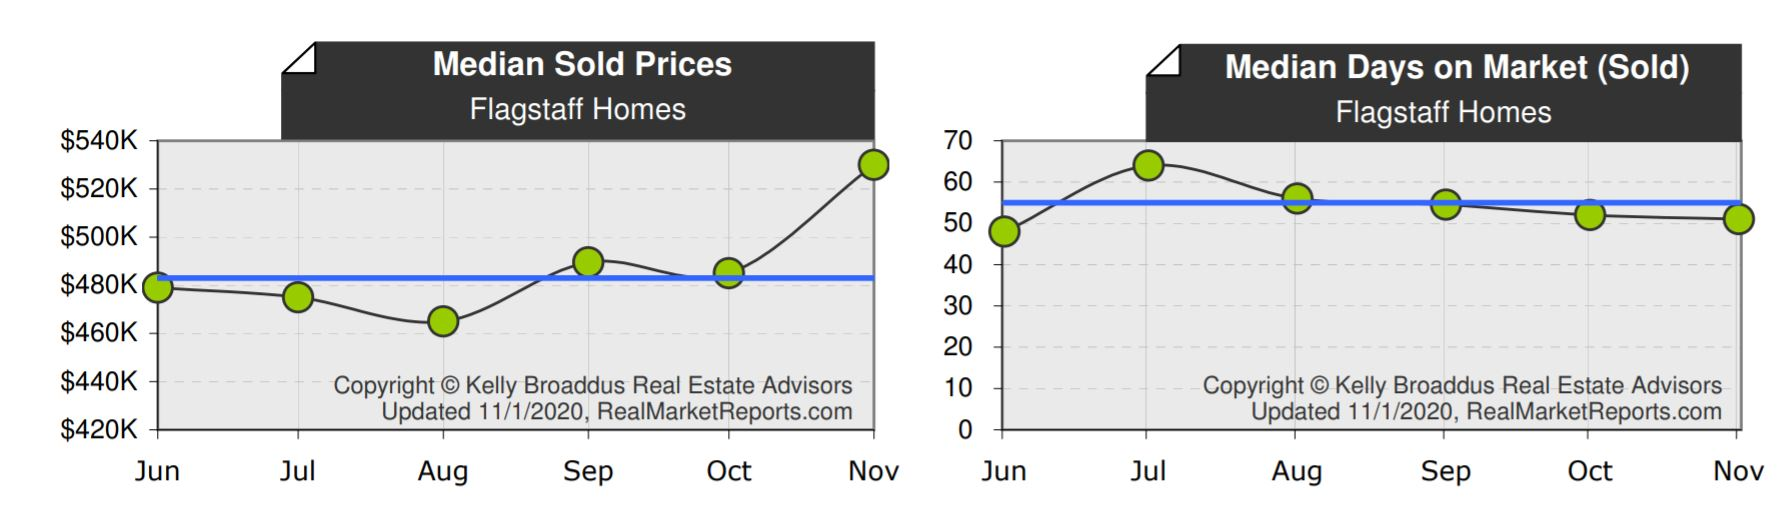 Median Sold Price Days on Market October 2020 Flagstaff